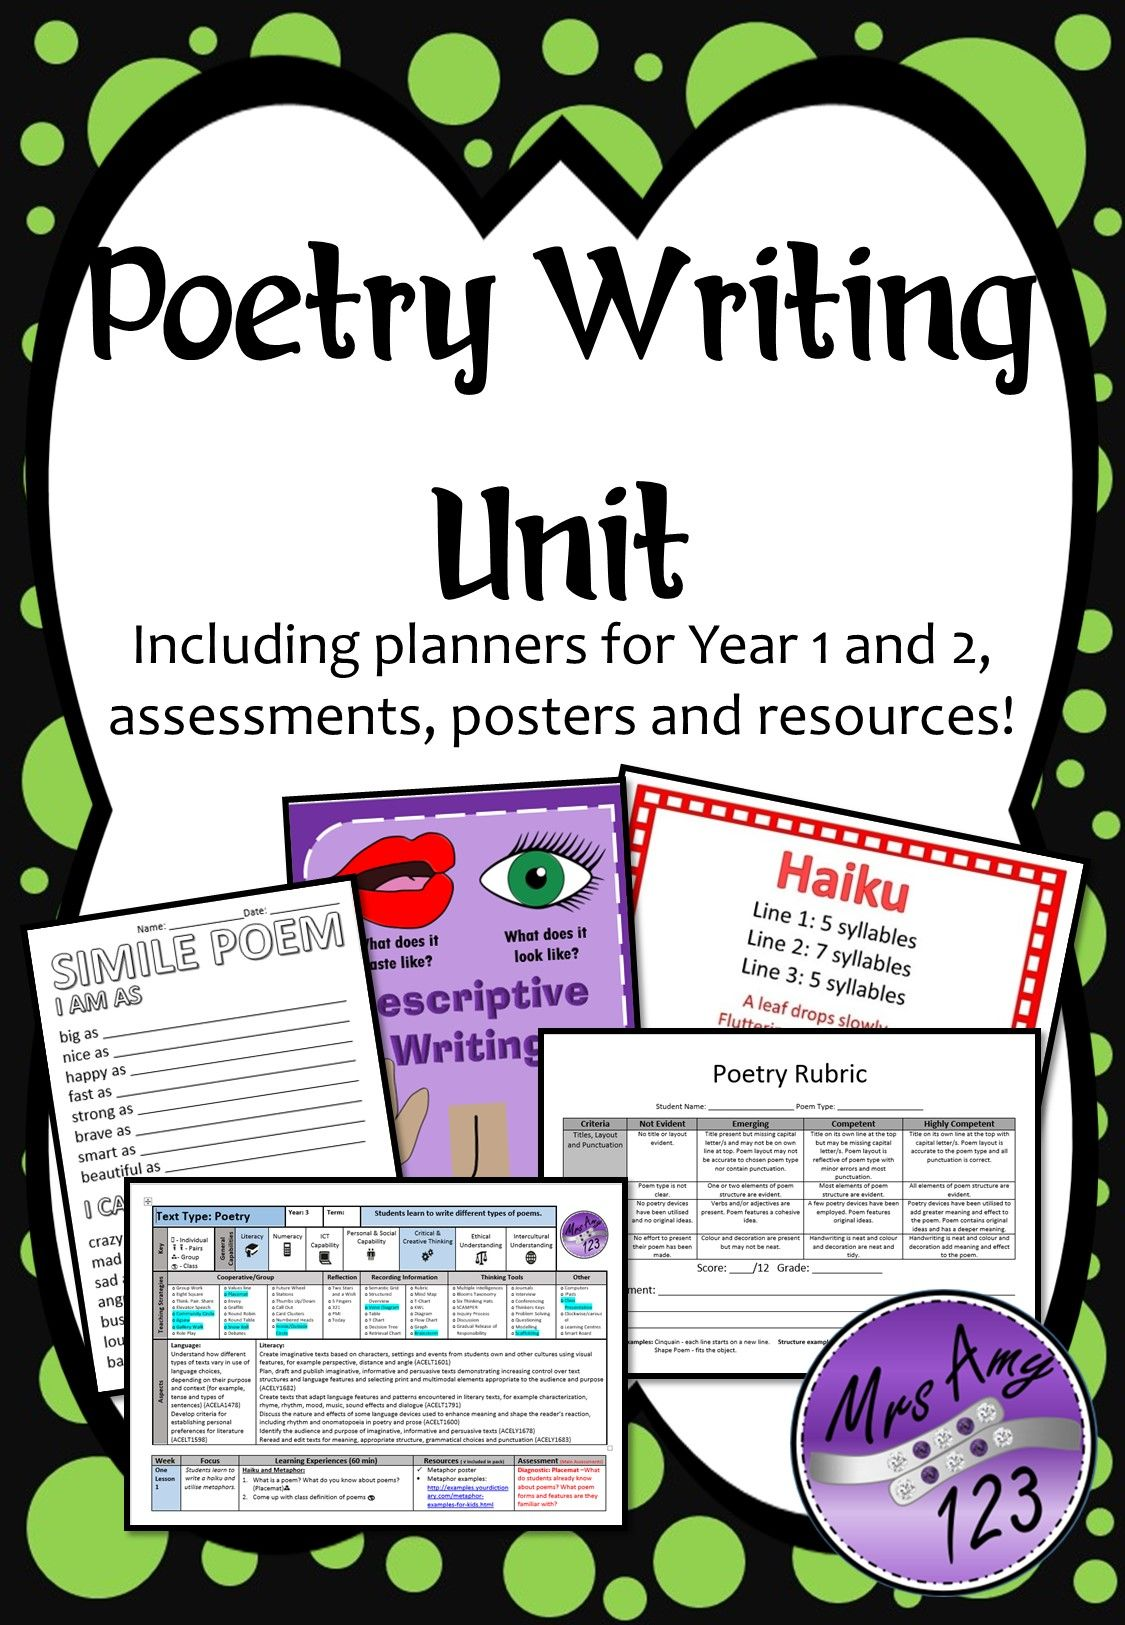 This Poetry Writing Unit Is A 10 Week Course With Ll